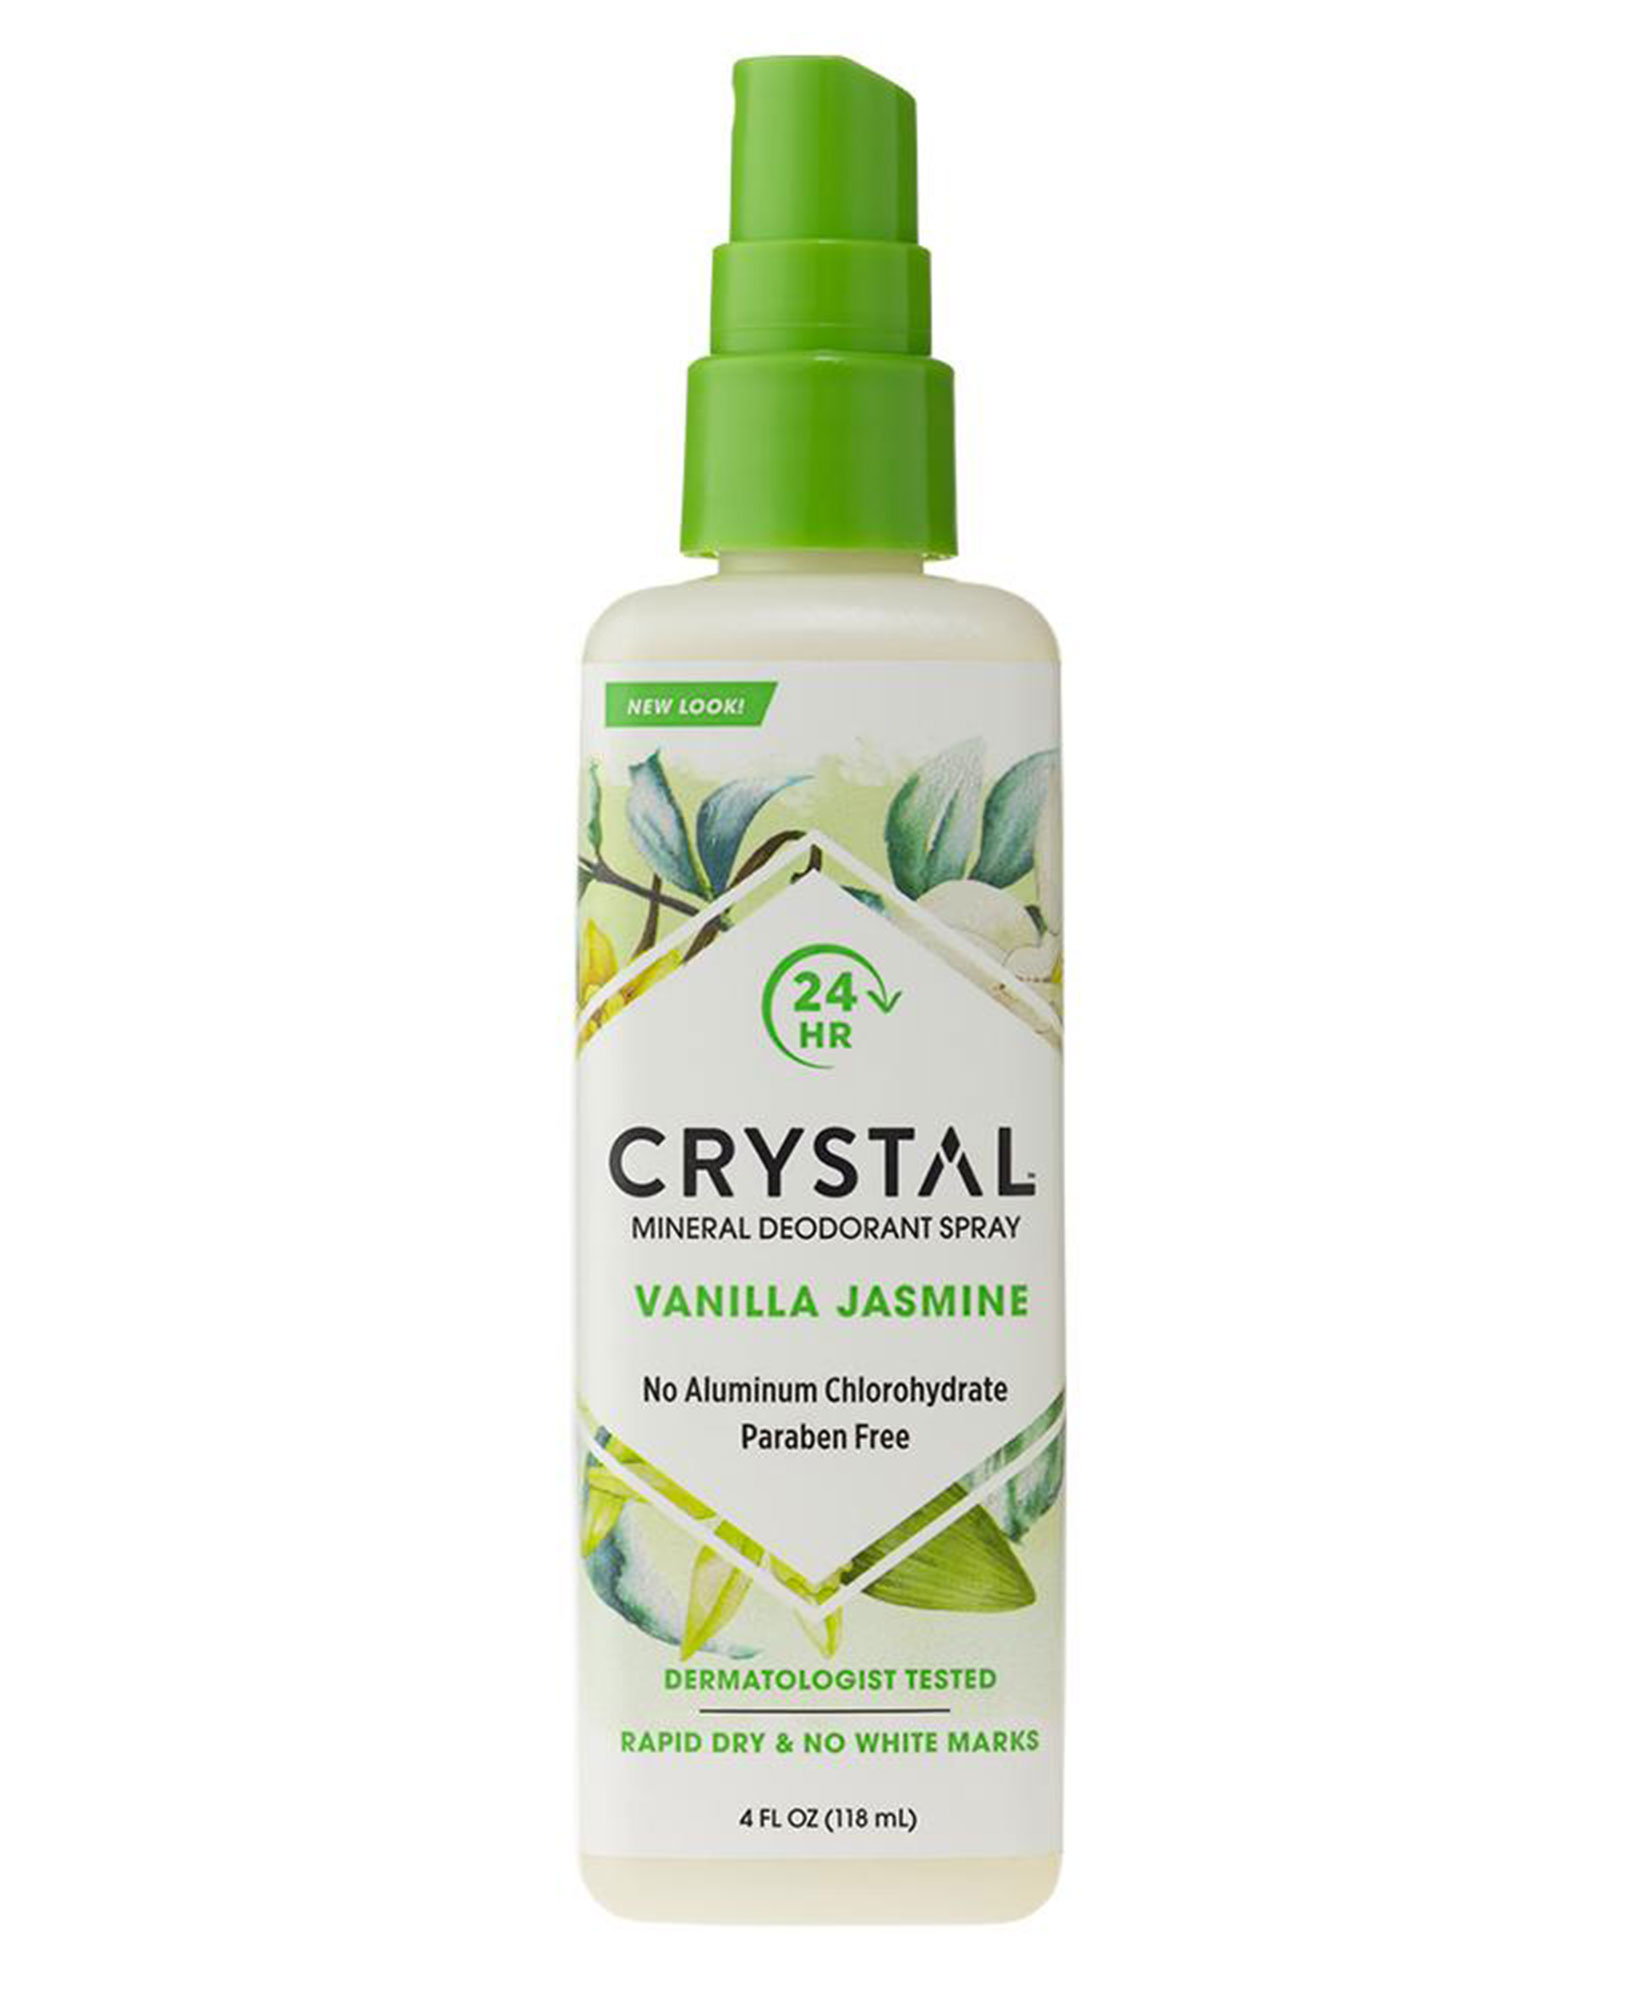 Ashley Graham Natural Deodorants crystal mineral deodorant spray - Crystal Mineral Deodorant Spray